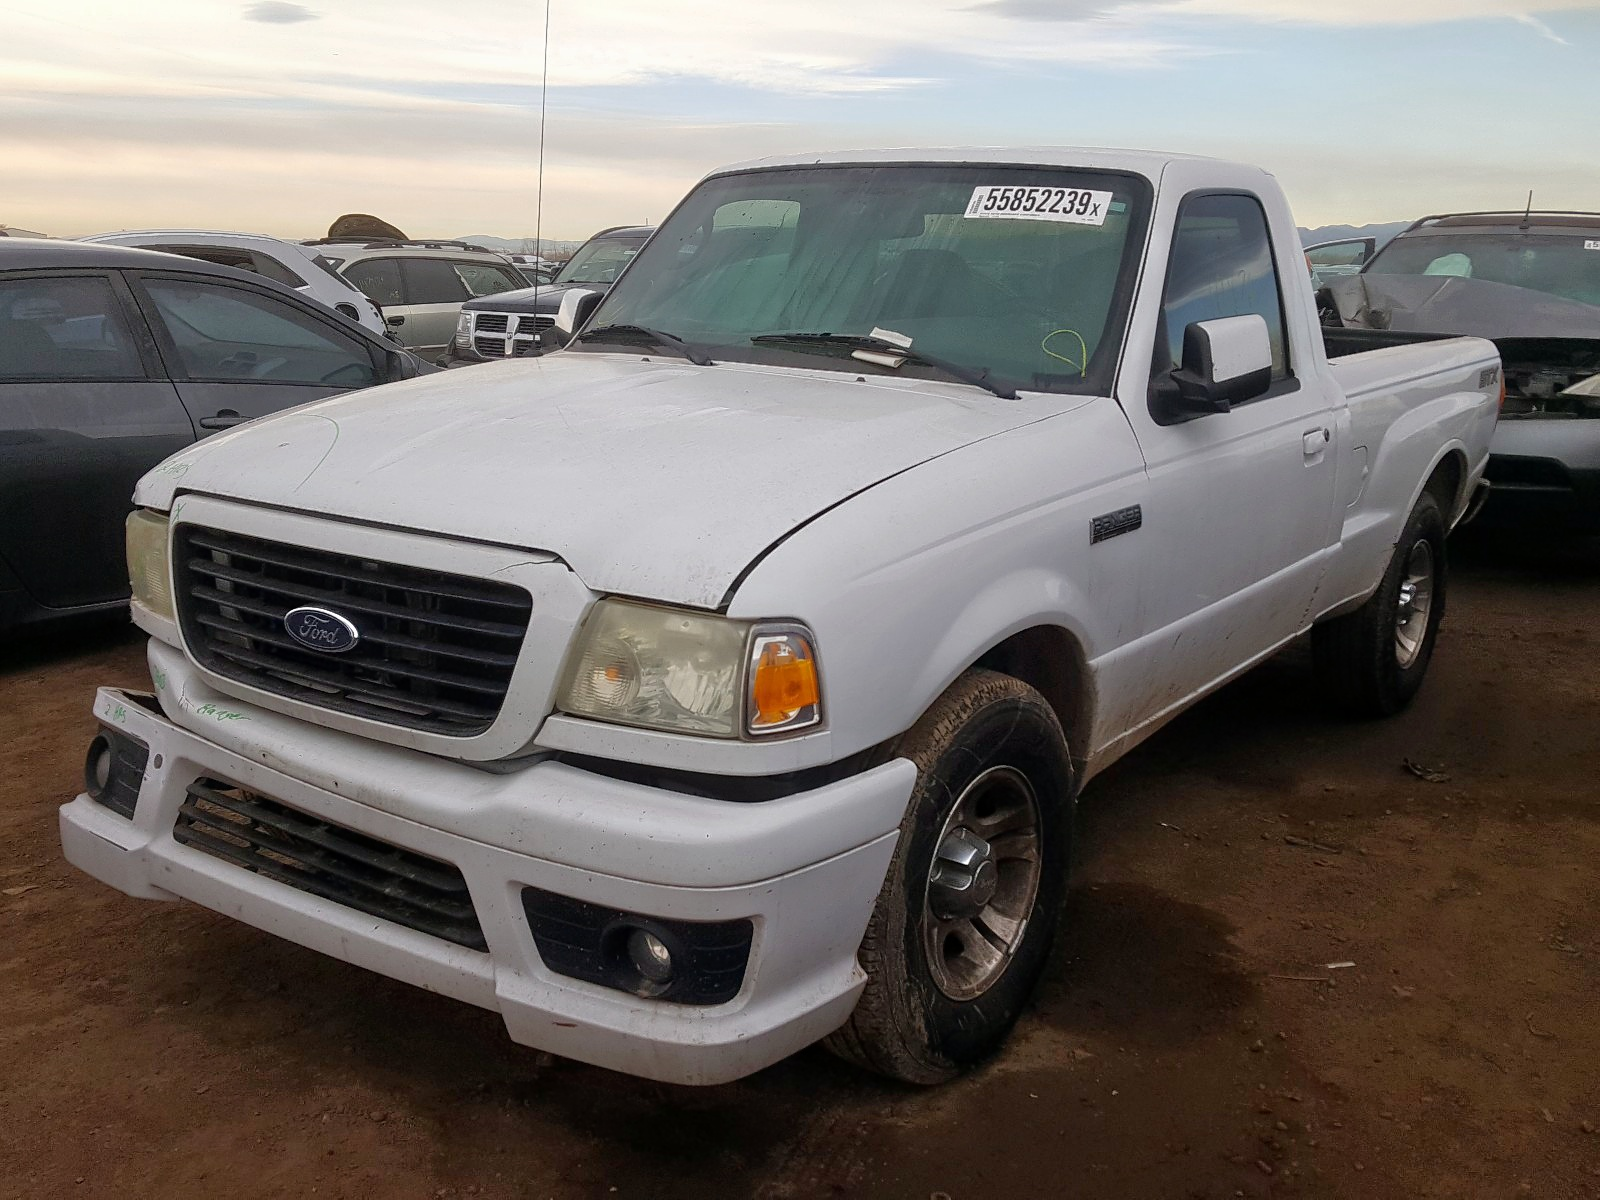 1FTYR10U26PA04908 - 2006 Ford Ranger 3.0L Right View